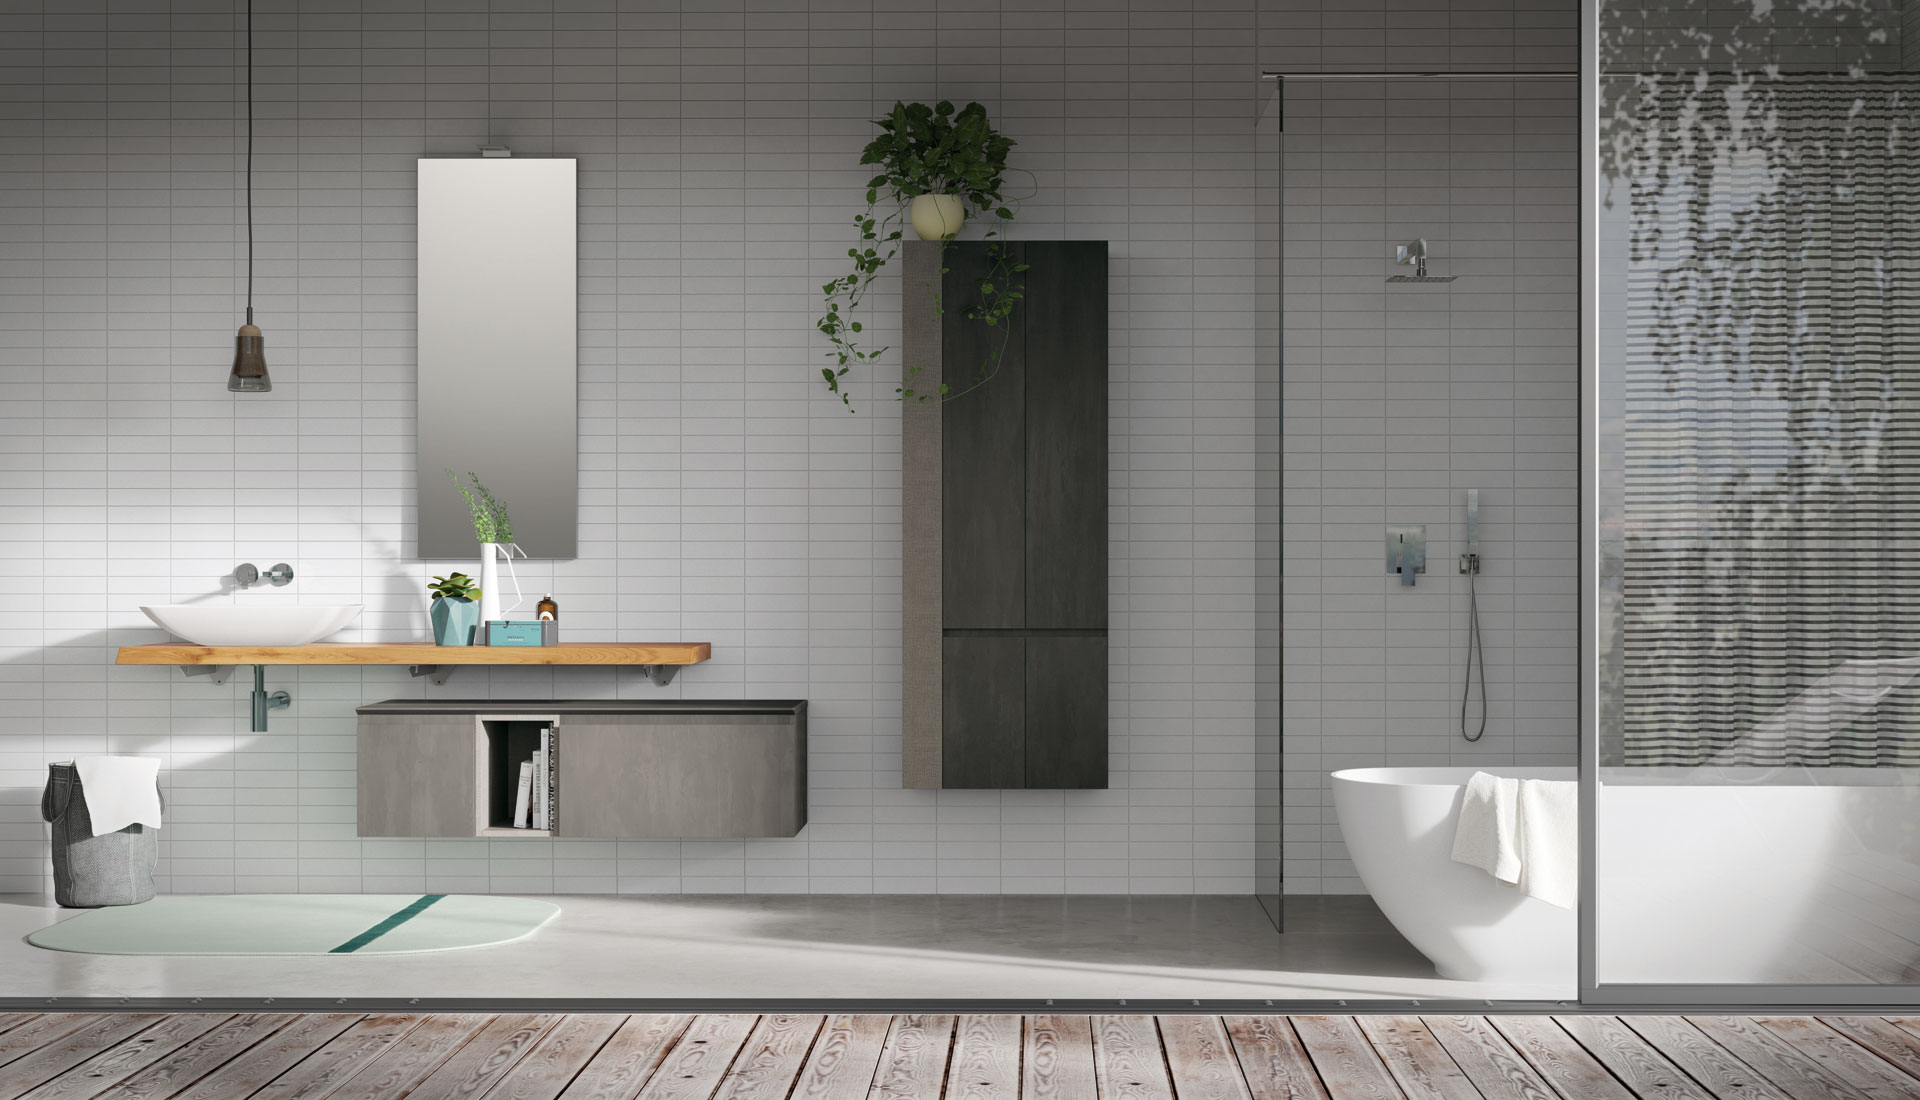 Model Dont Forget To Allow Enough Clearance Around Bathroom Fittings So You Can  More So If You Select A Handleless One That Turns On And Off Via A Sensor Fitted, Modular Or Freestanding Furniture? Its Down To Personal Taste, Though The